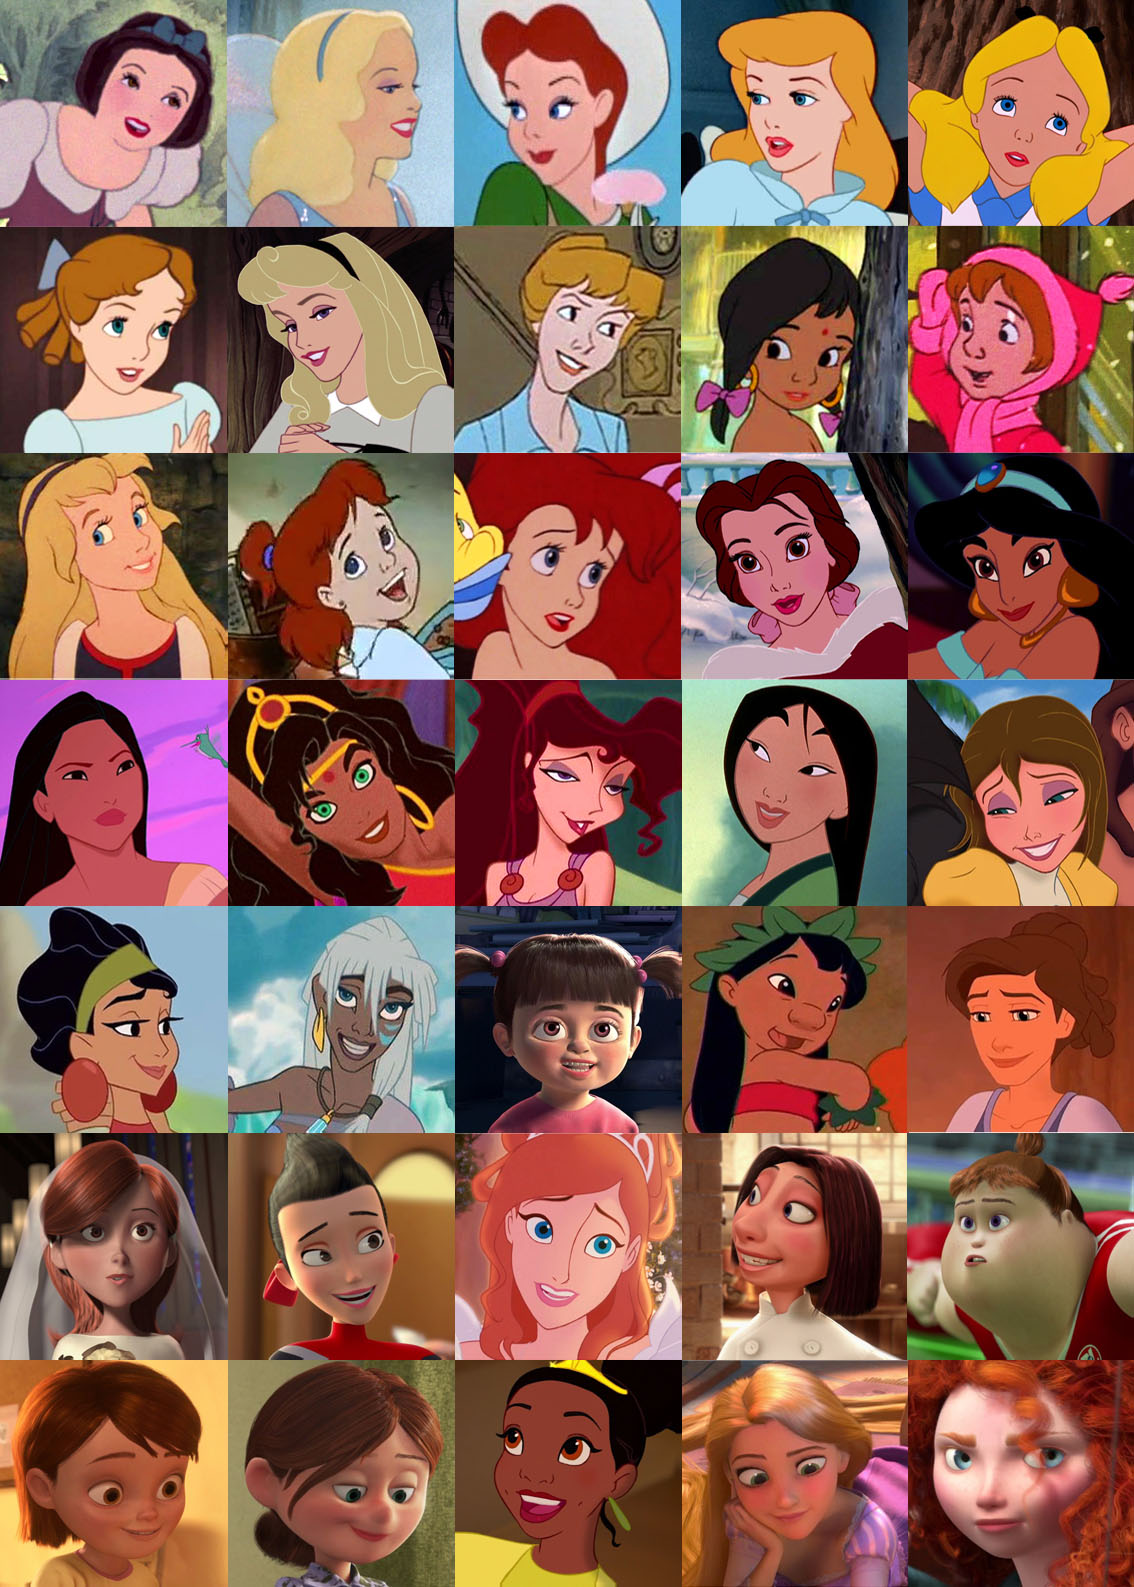 Disney-human-heroines-from-time-to-time-disney-females-31925439-1134-1587